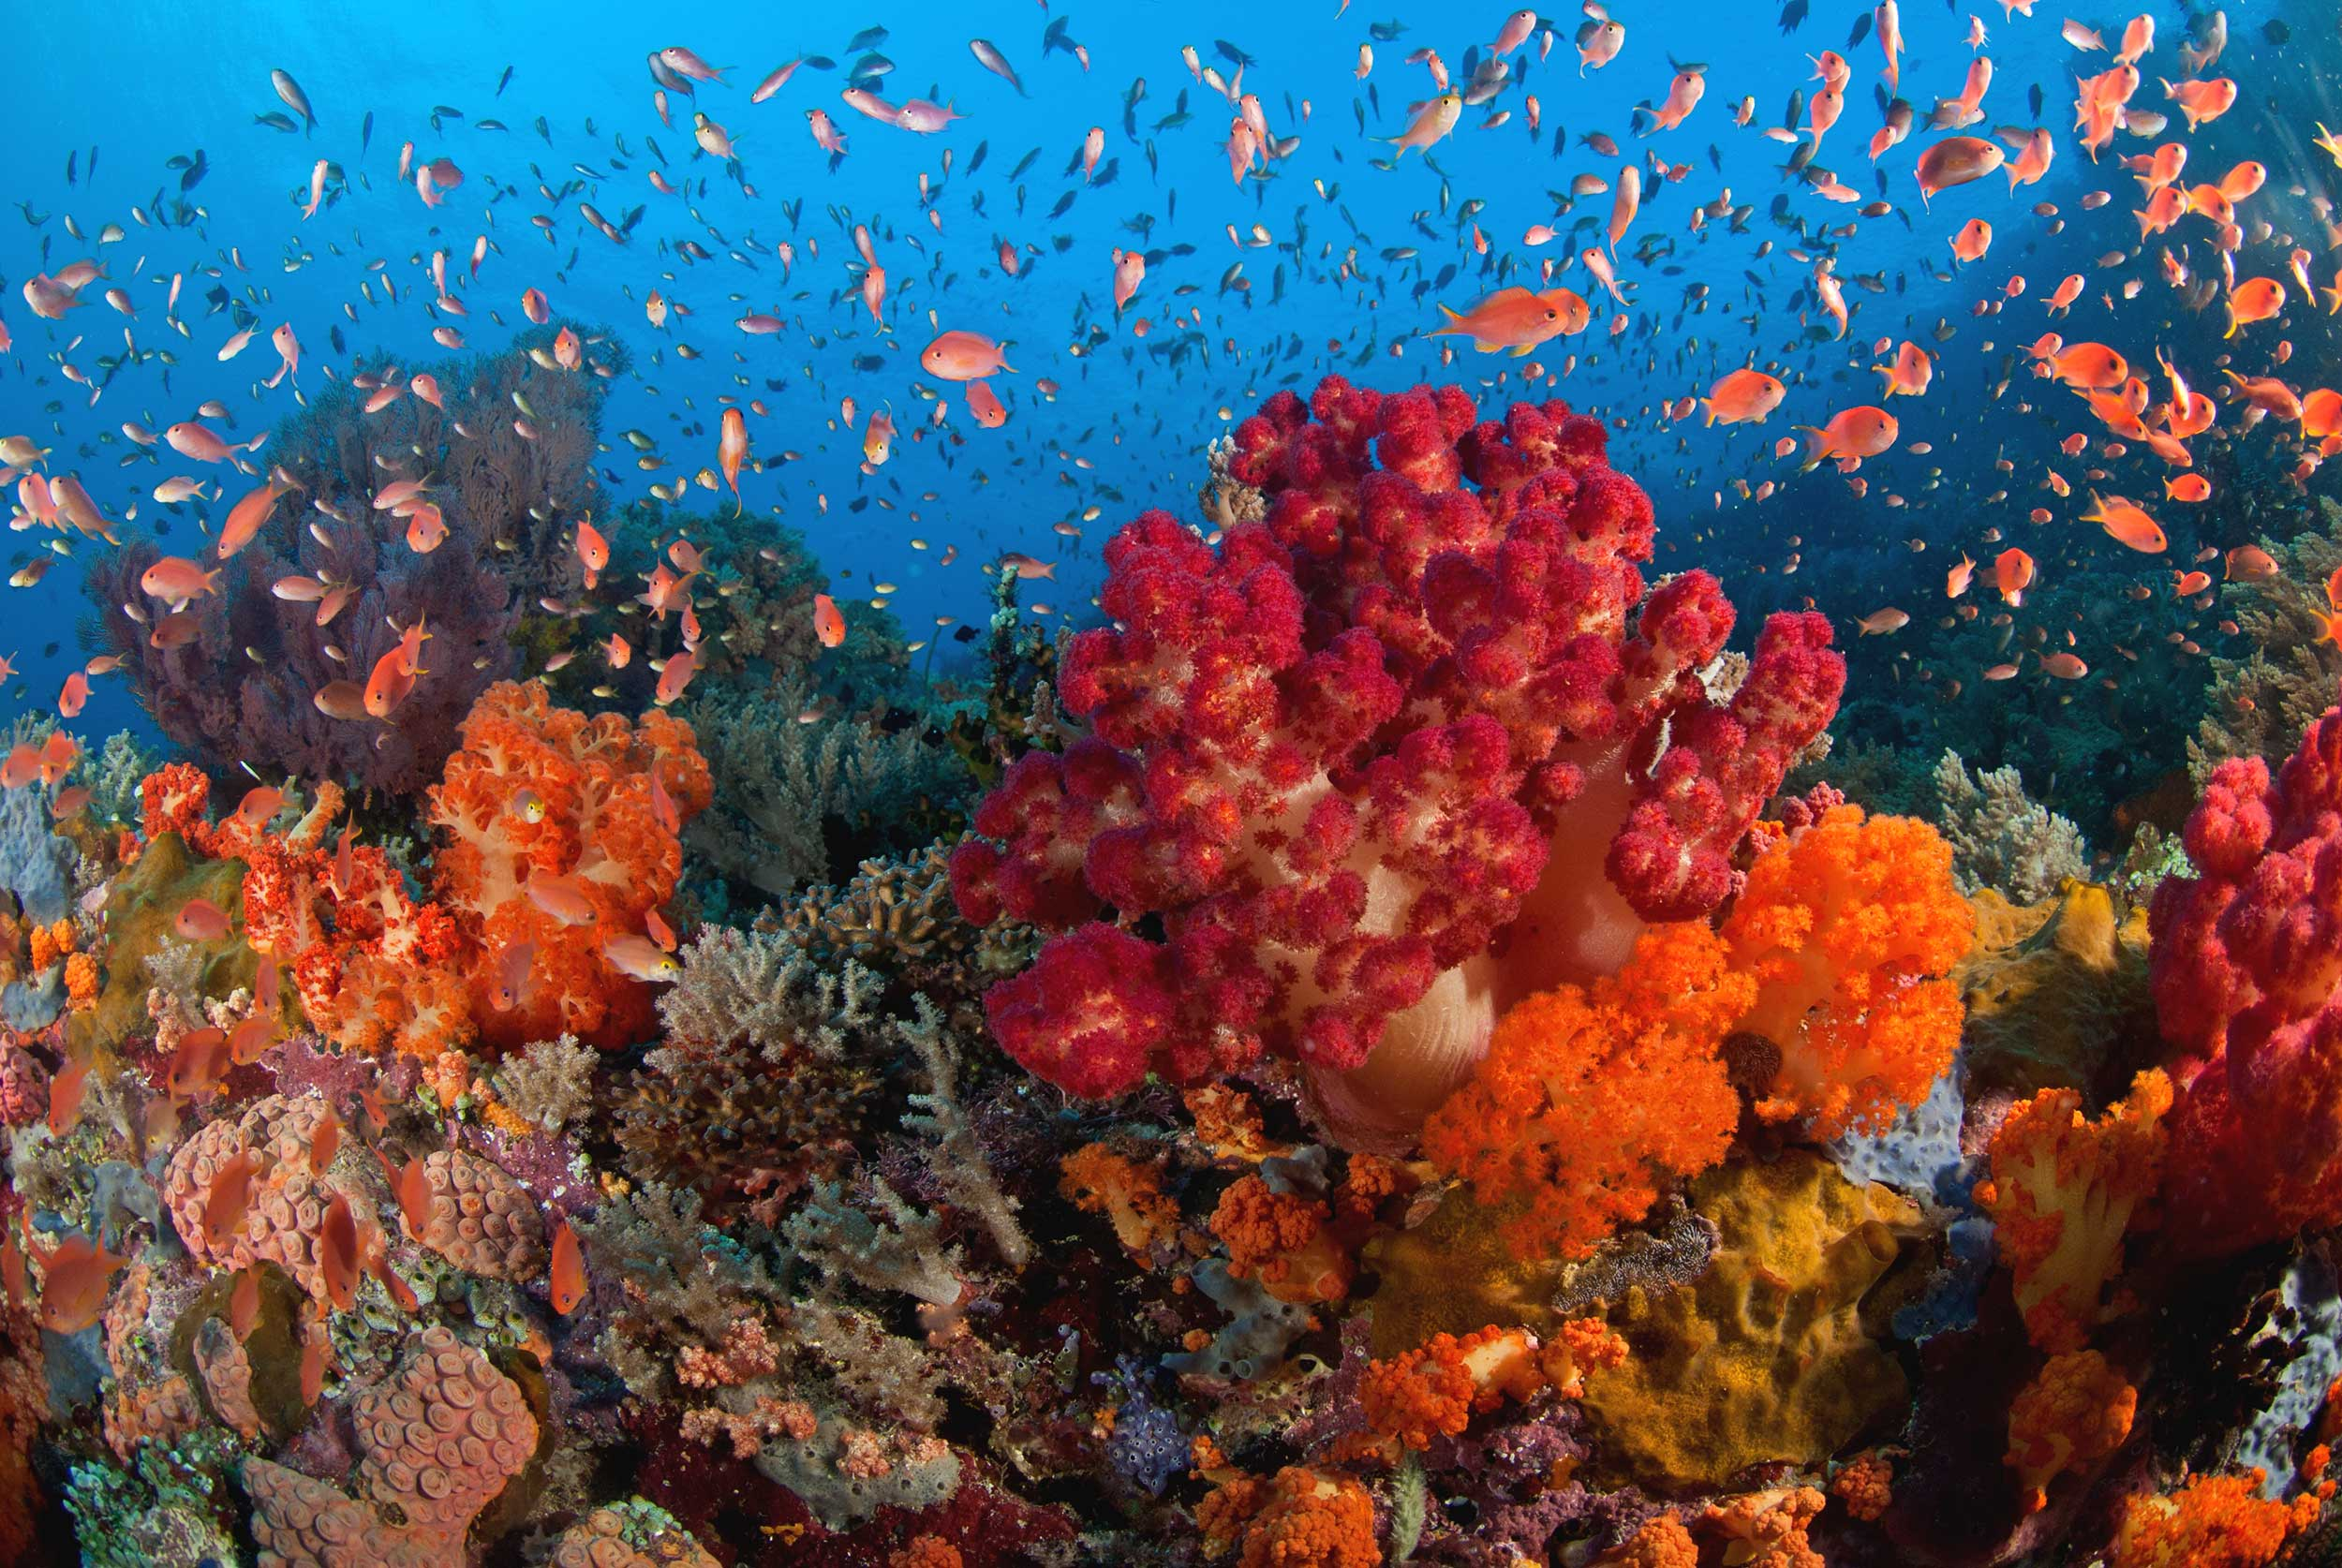 The vibrant marine life of Raja Ampat creates a colourful underwater landscape.